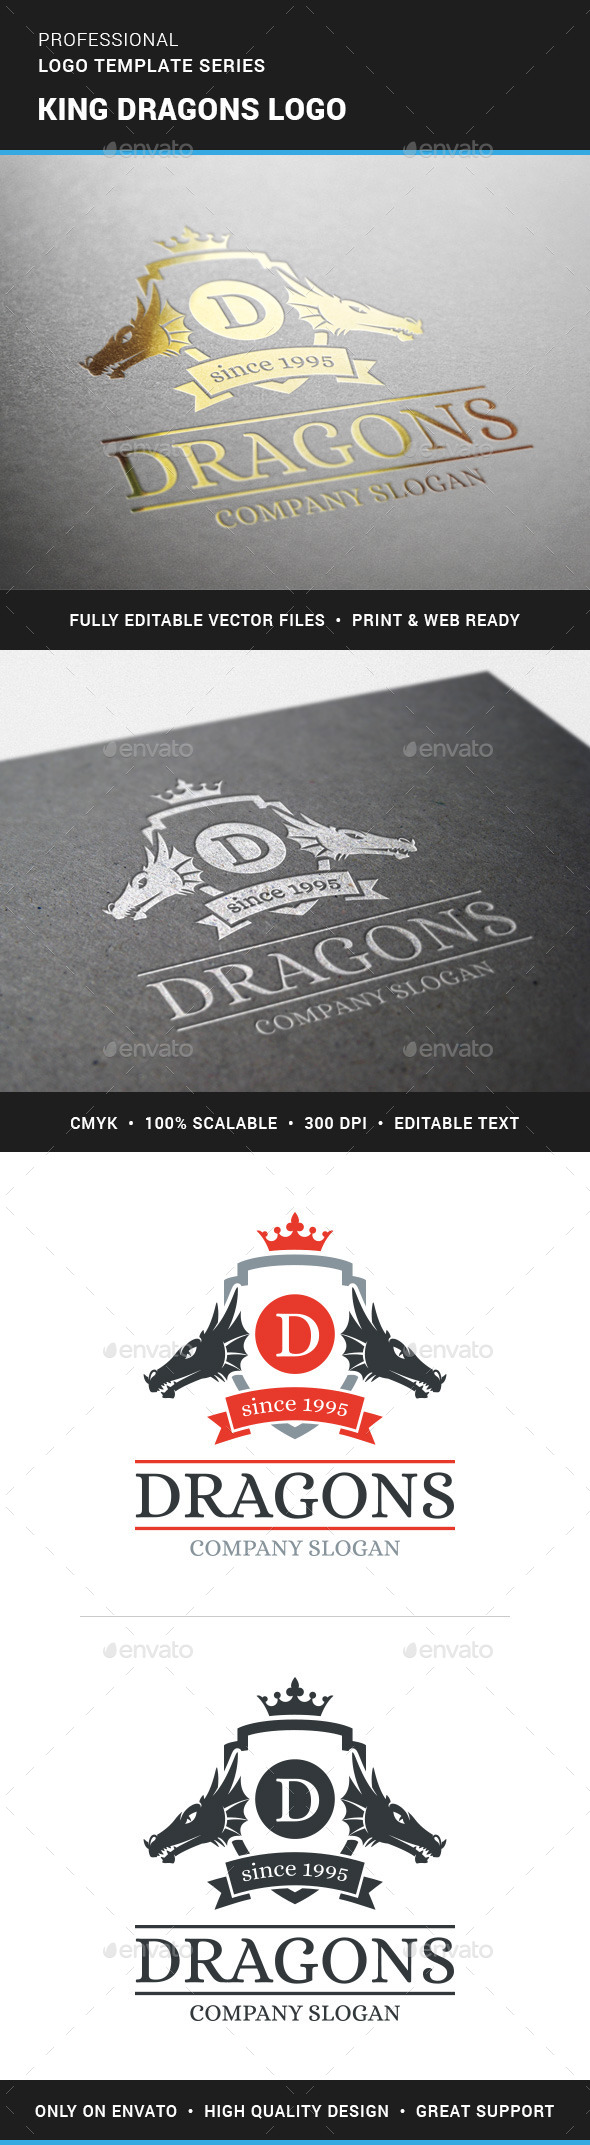 GraphicRiver King Dragons Logo Template 11353289